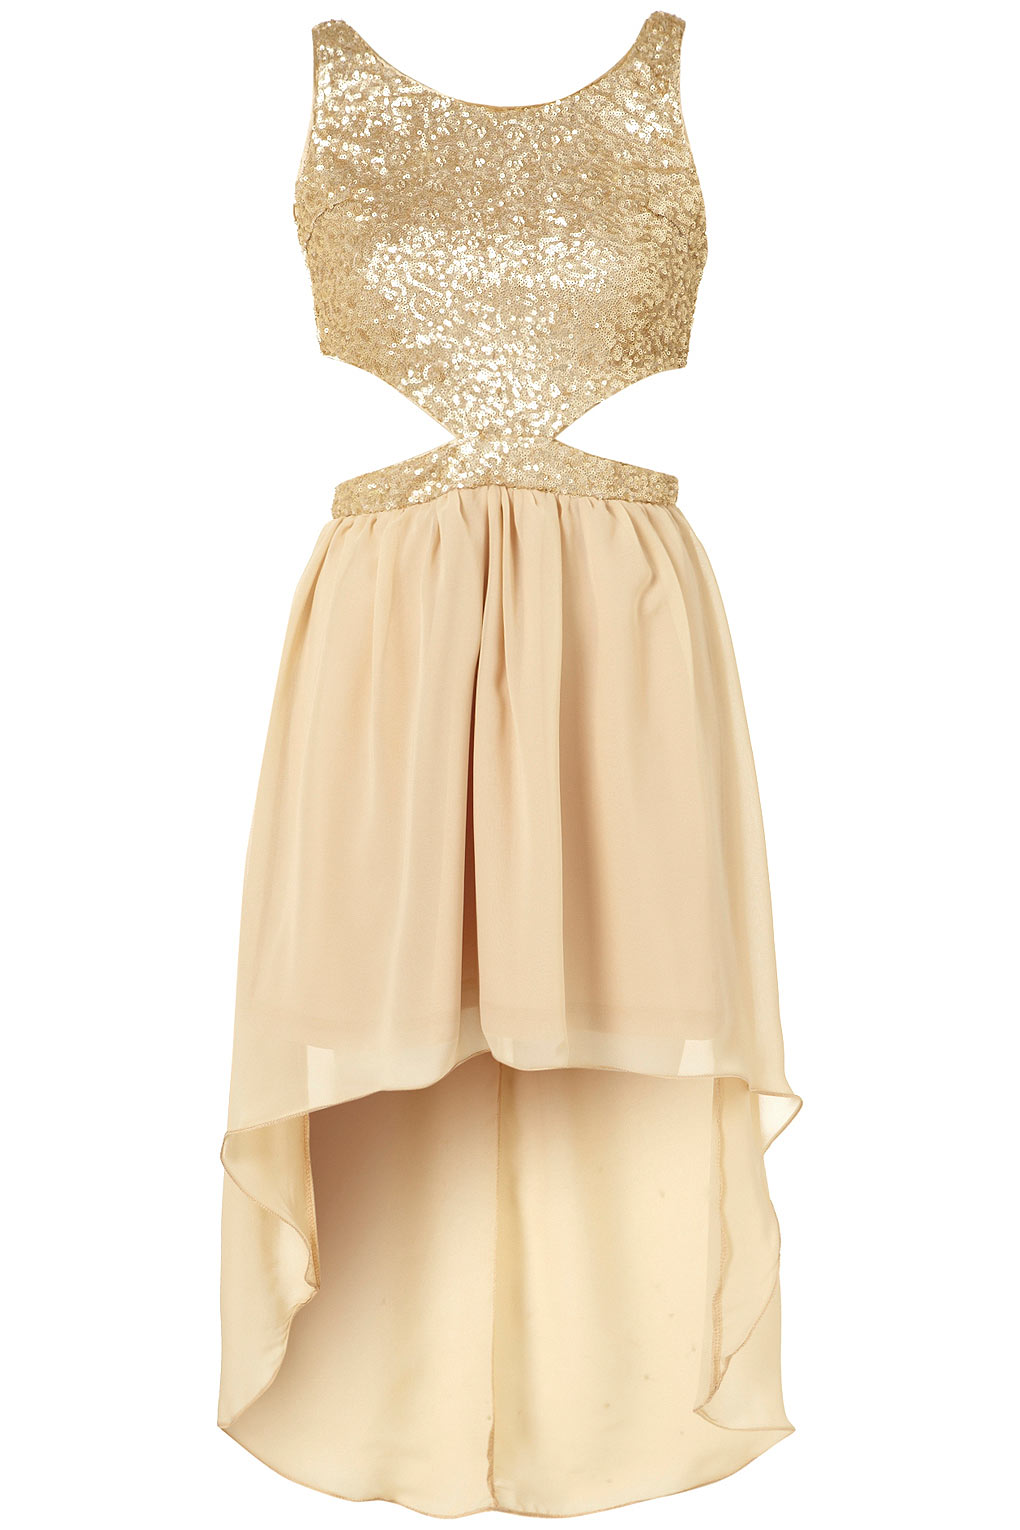 049d0d72b51 TOPSHOP Sequin Cut Out Dress By Rare in Metallic - Lyst